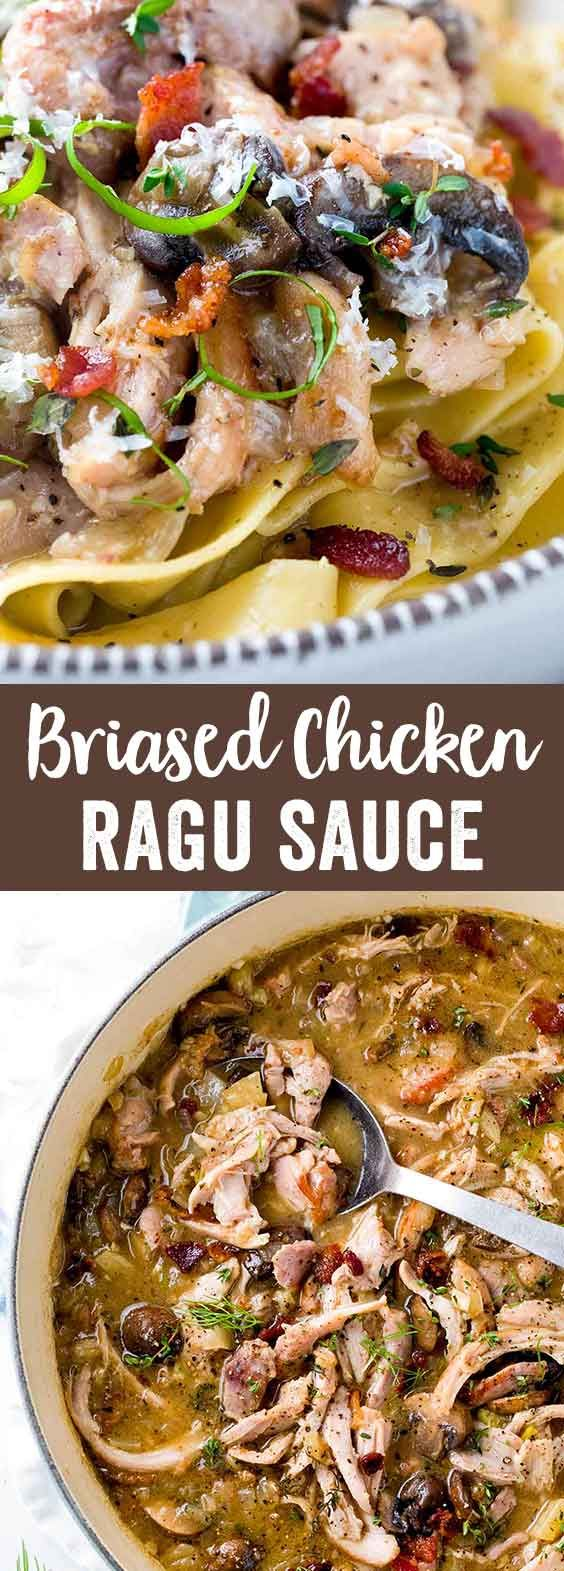 Homemade Ragu sauce made with braised chicken, mushrooms, bacon, and served up with pappardelle pasta. Delicious Italian cuisine made easy! via @foodiegavin